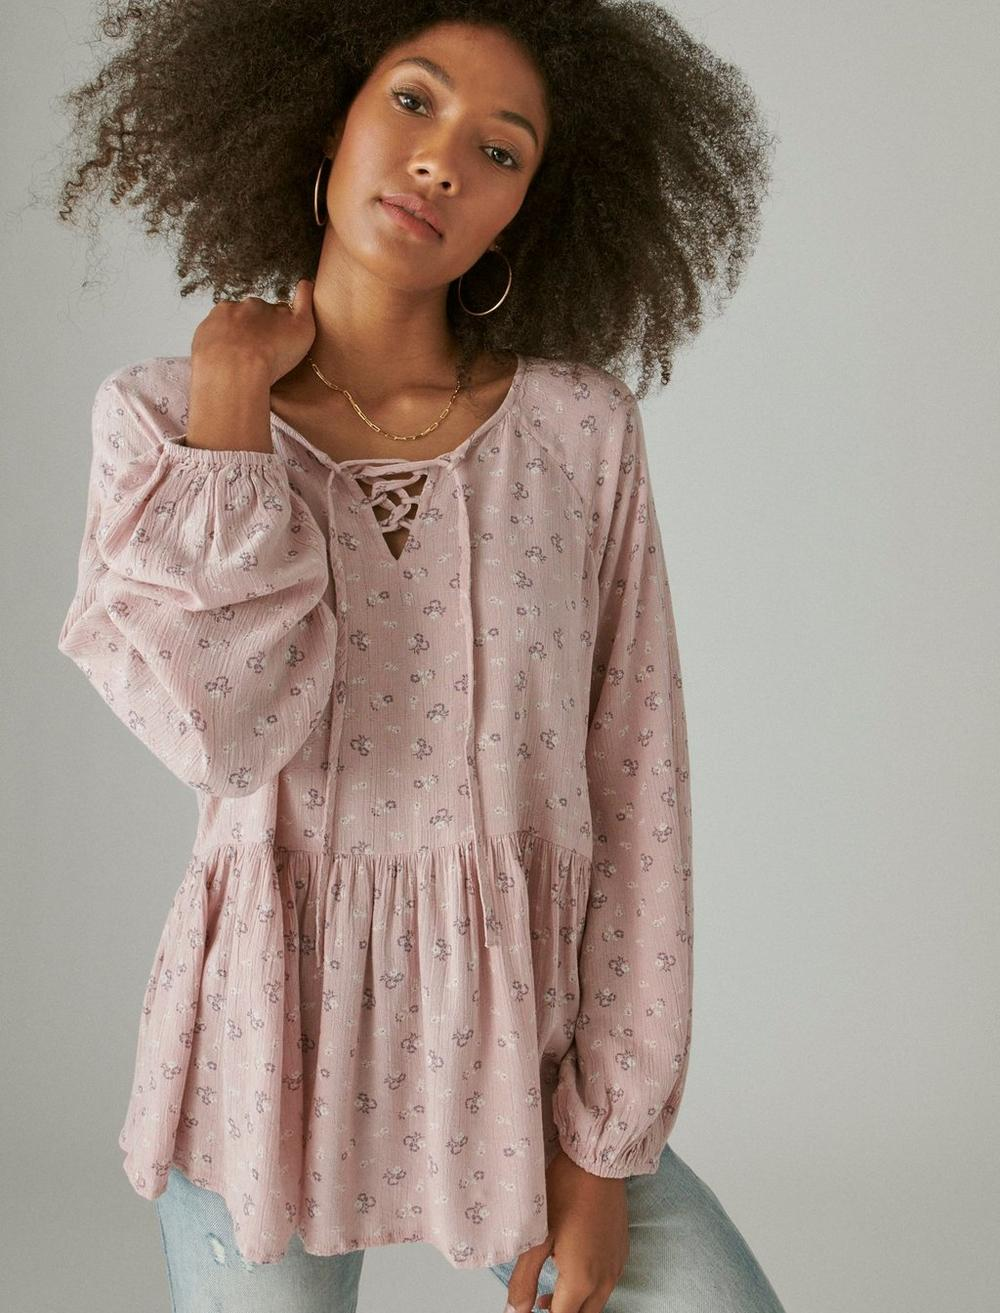 FLORAL PRINTED TUNIC, image 6